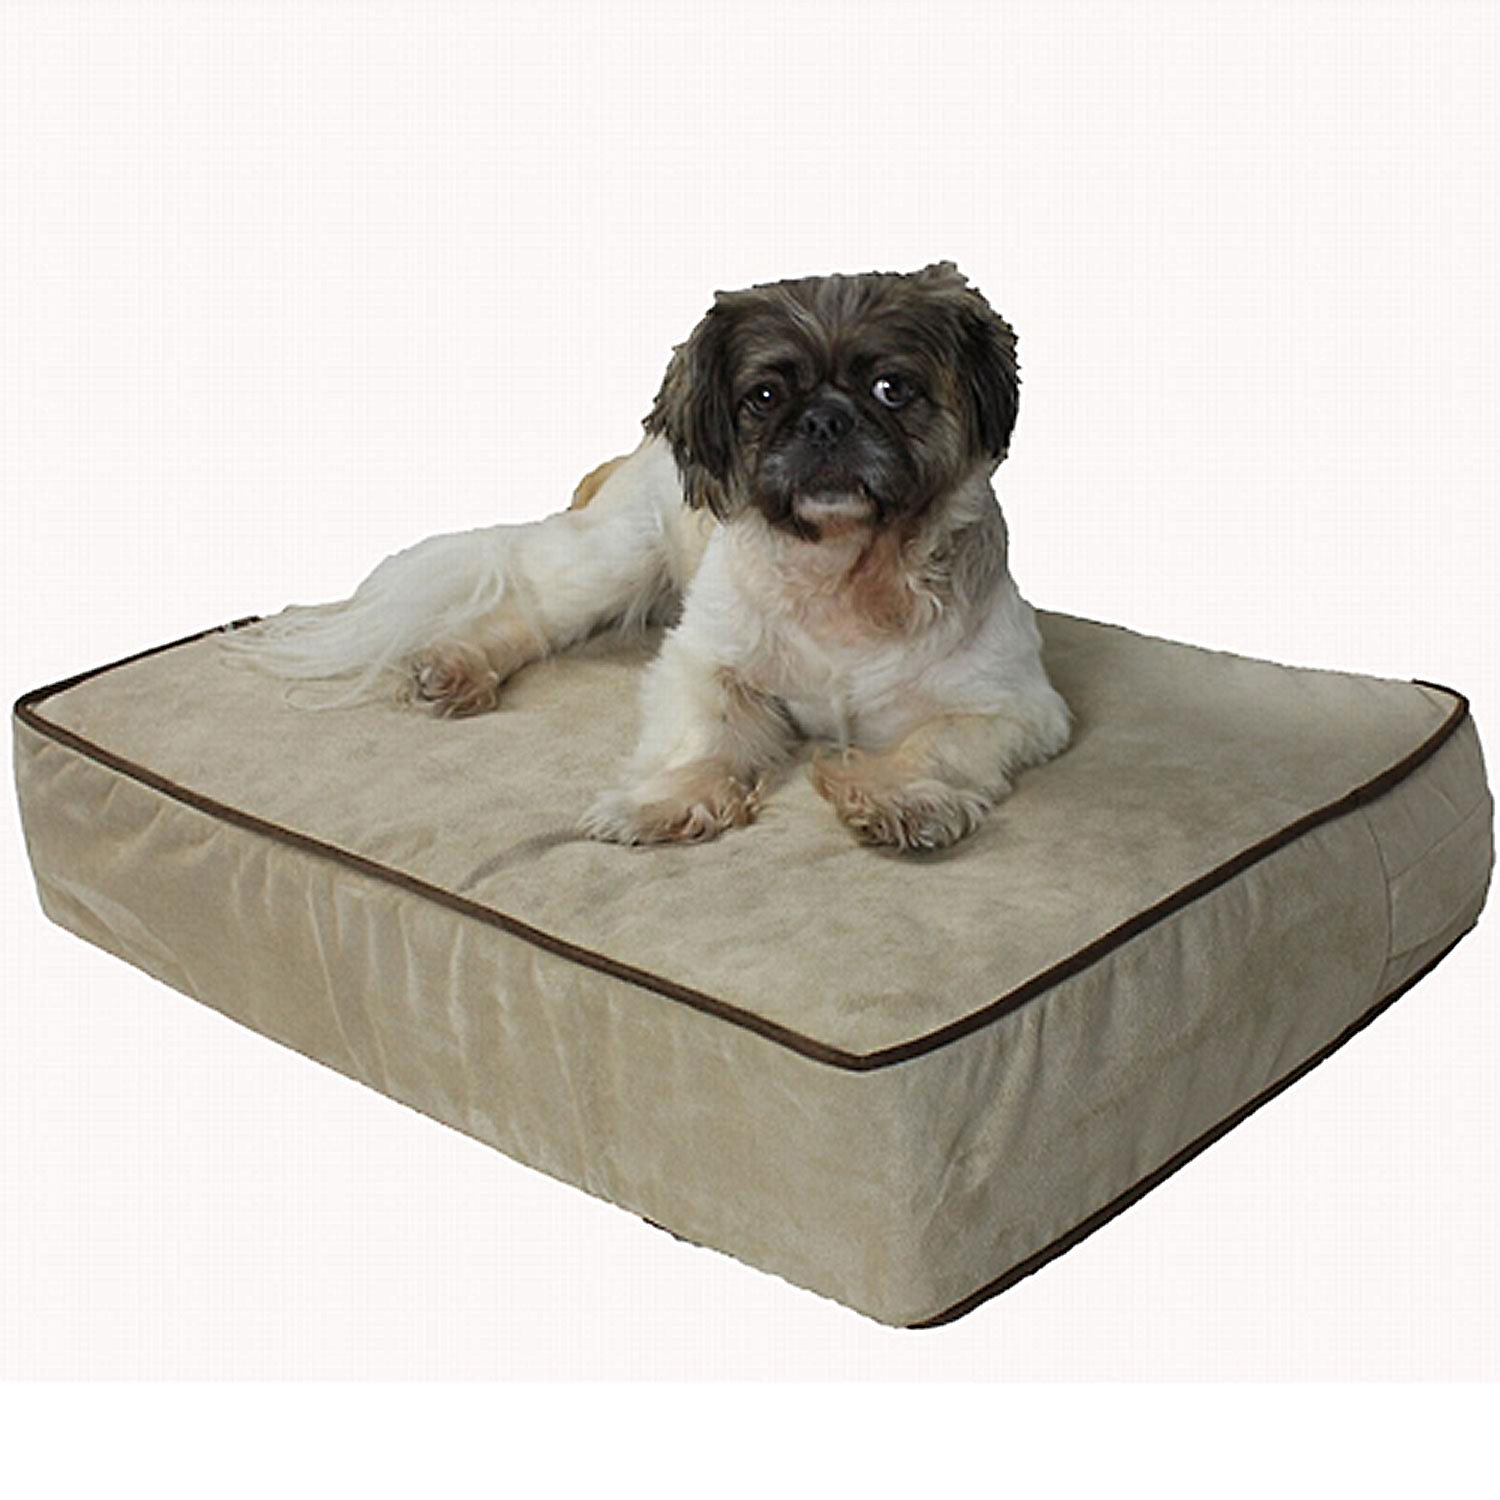 Snoozer Outlast 5 Inch Sleep System Buckskin & Java Dog Bed